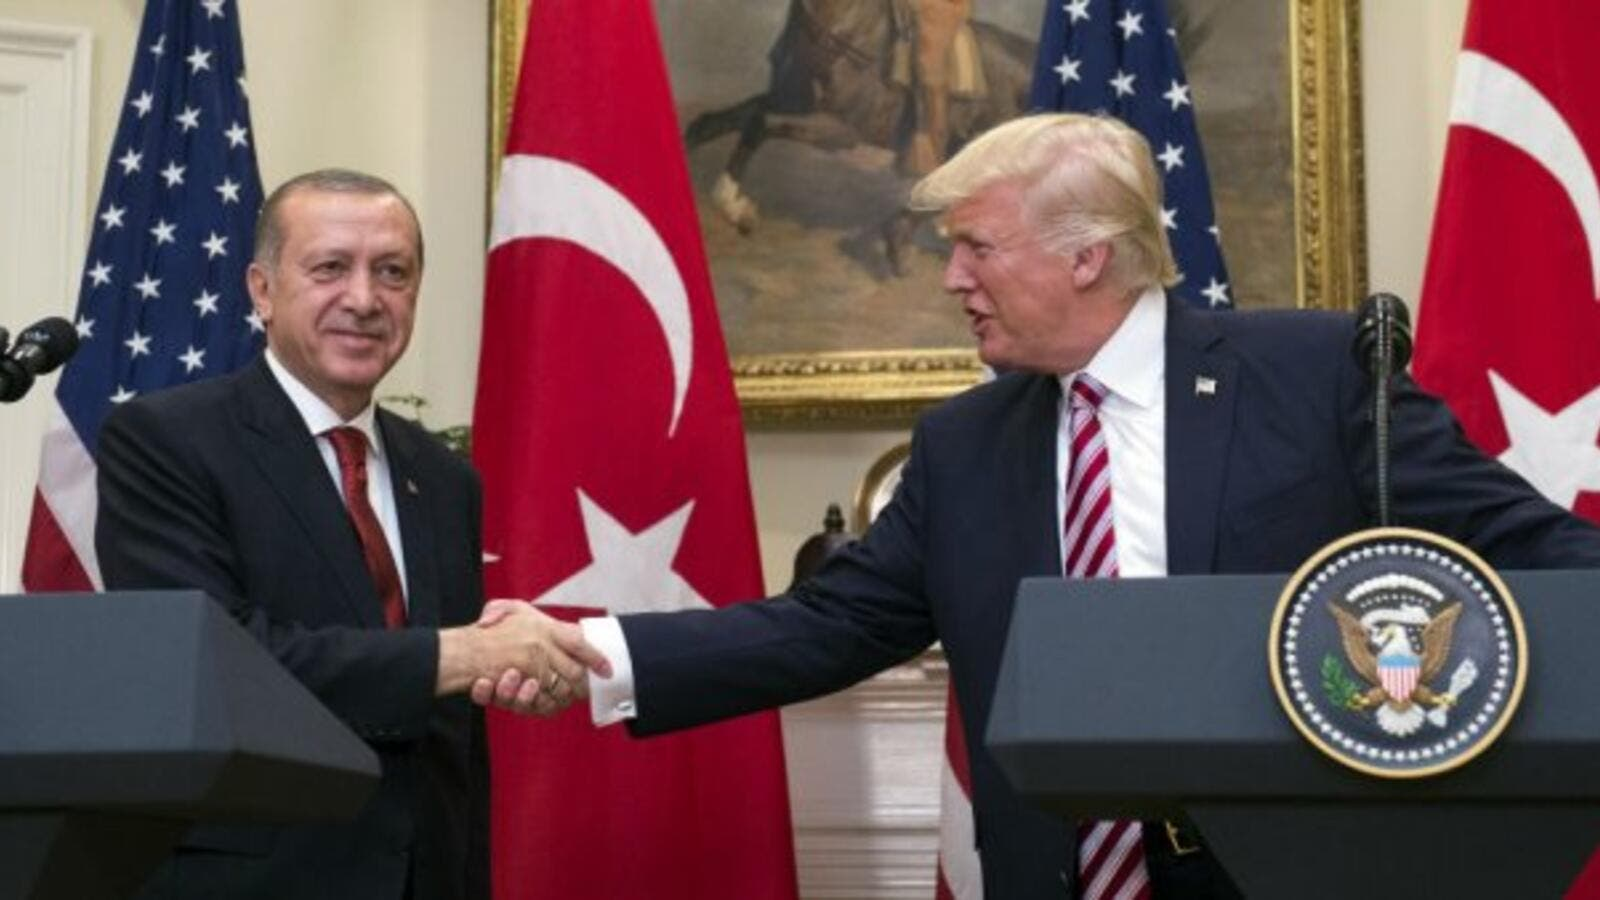 US President Donald Trump shakes hands with Turkish President Recep Tayyip Erdogan (AFP/File Photo)